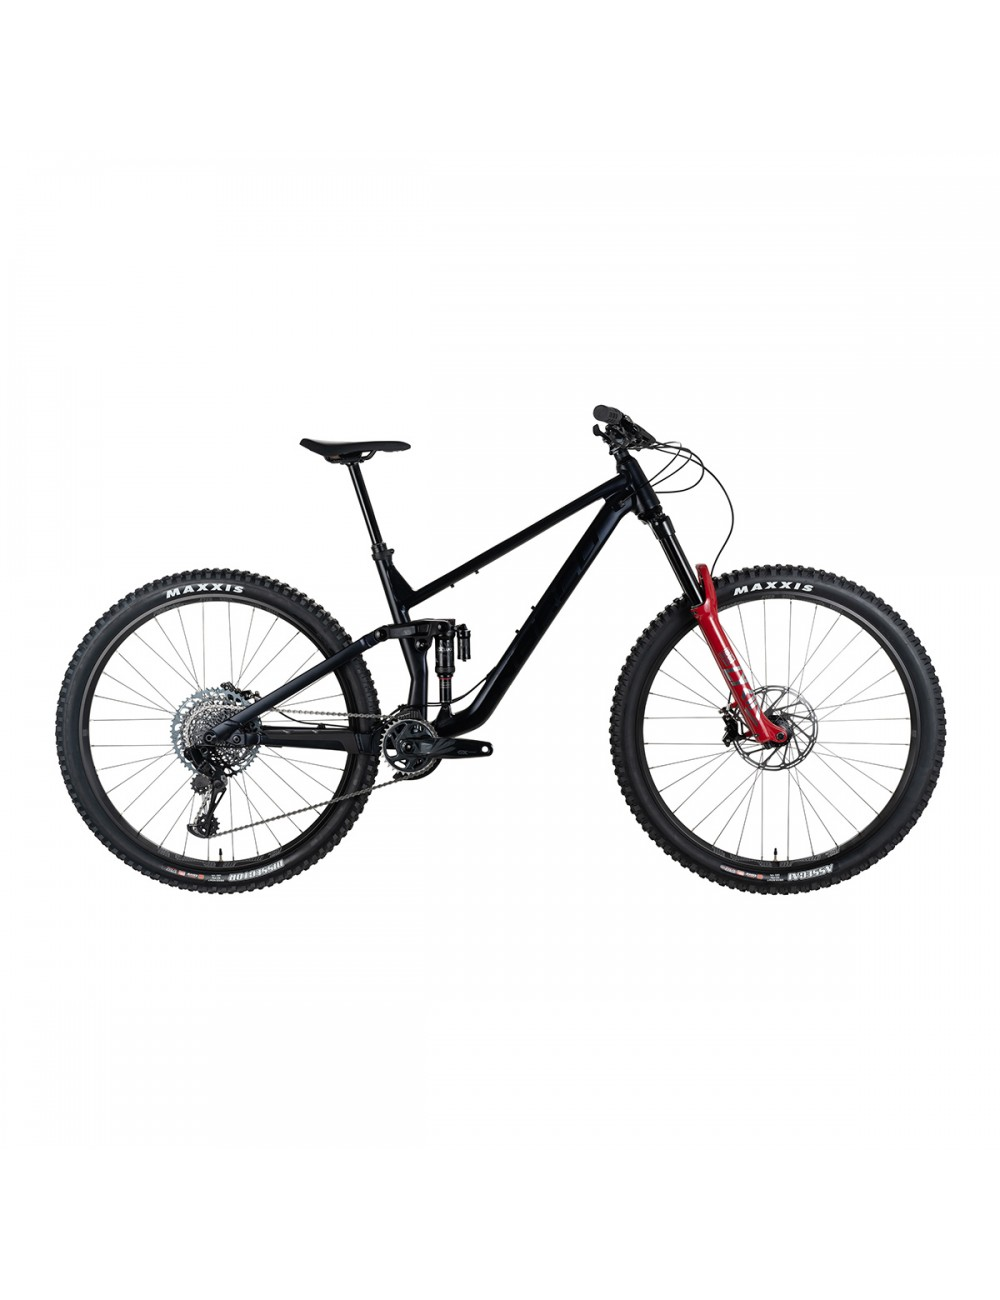 Norco Sight A7.1 Bike - Dark Midnight Blue/Black_13336